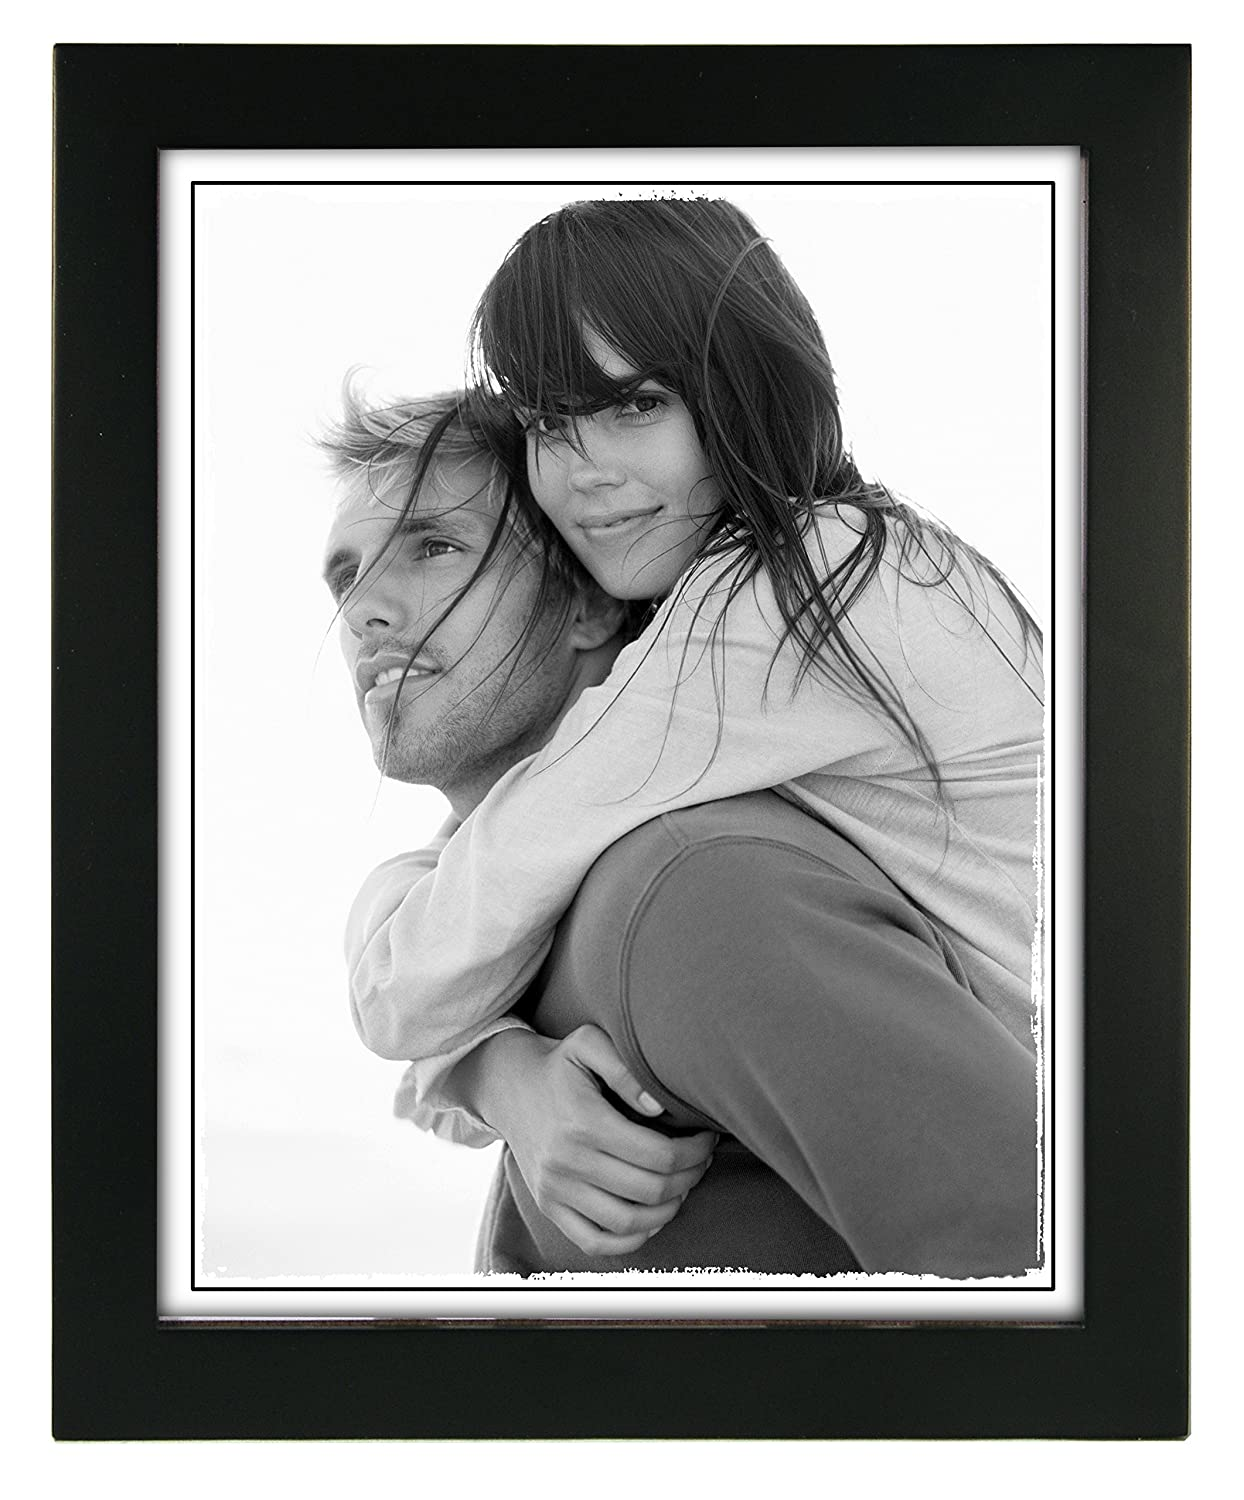 Amazon 8x10 black wood picture frame made to display amazon 8x10 black wood picture frame made to display pictures 8x10 wide molding real glass wall mount or table top single frames jeuxipadfo Images